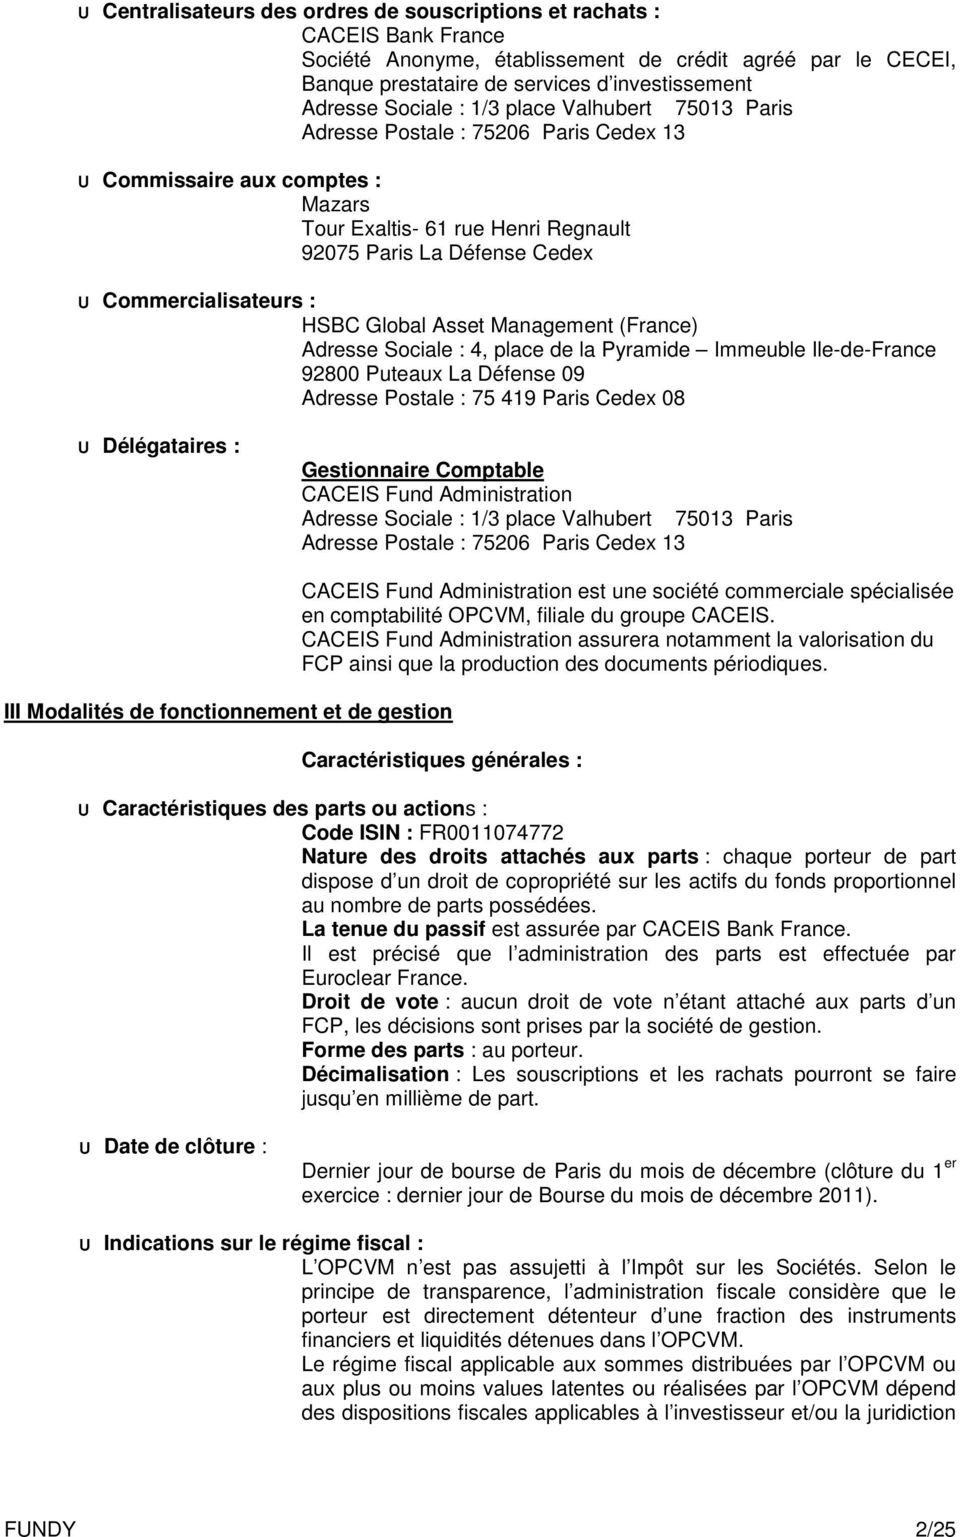 Commercialisateurs : HSBC Global Asset Management (France) Adresse Sociale : 4, place de la Pyramide Immeuble Ile-de-France 92800 Puteaux La Défense 09 Adresse Postale : 75 419 Paris Cedex 08 u